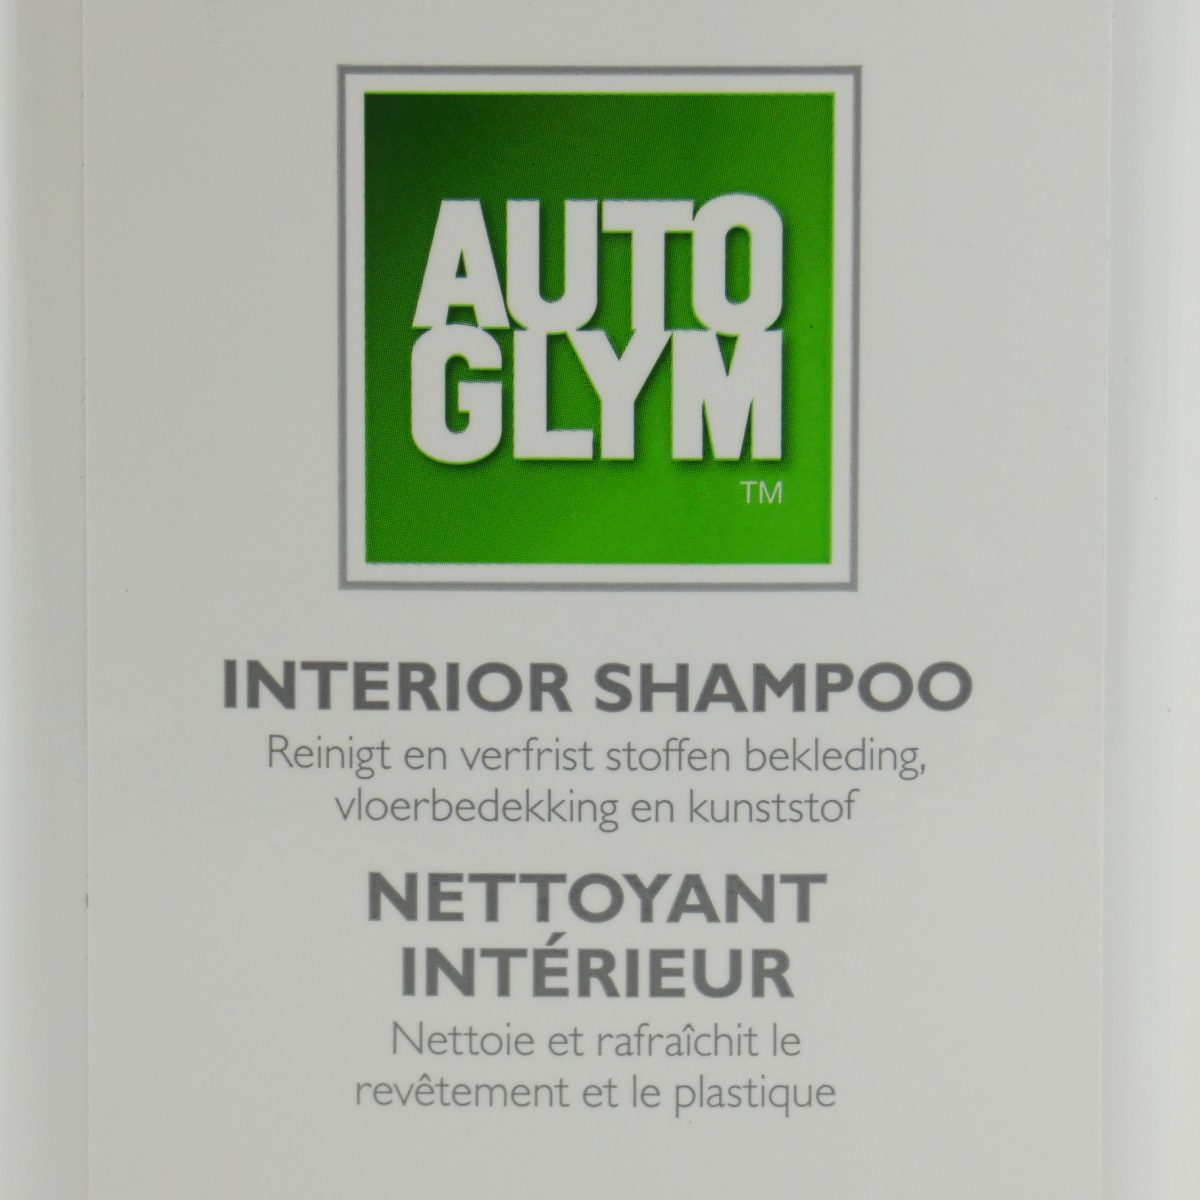 Autoglym car interior shampoo 500ML